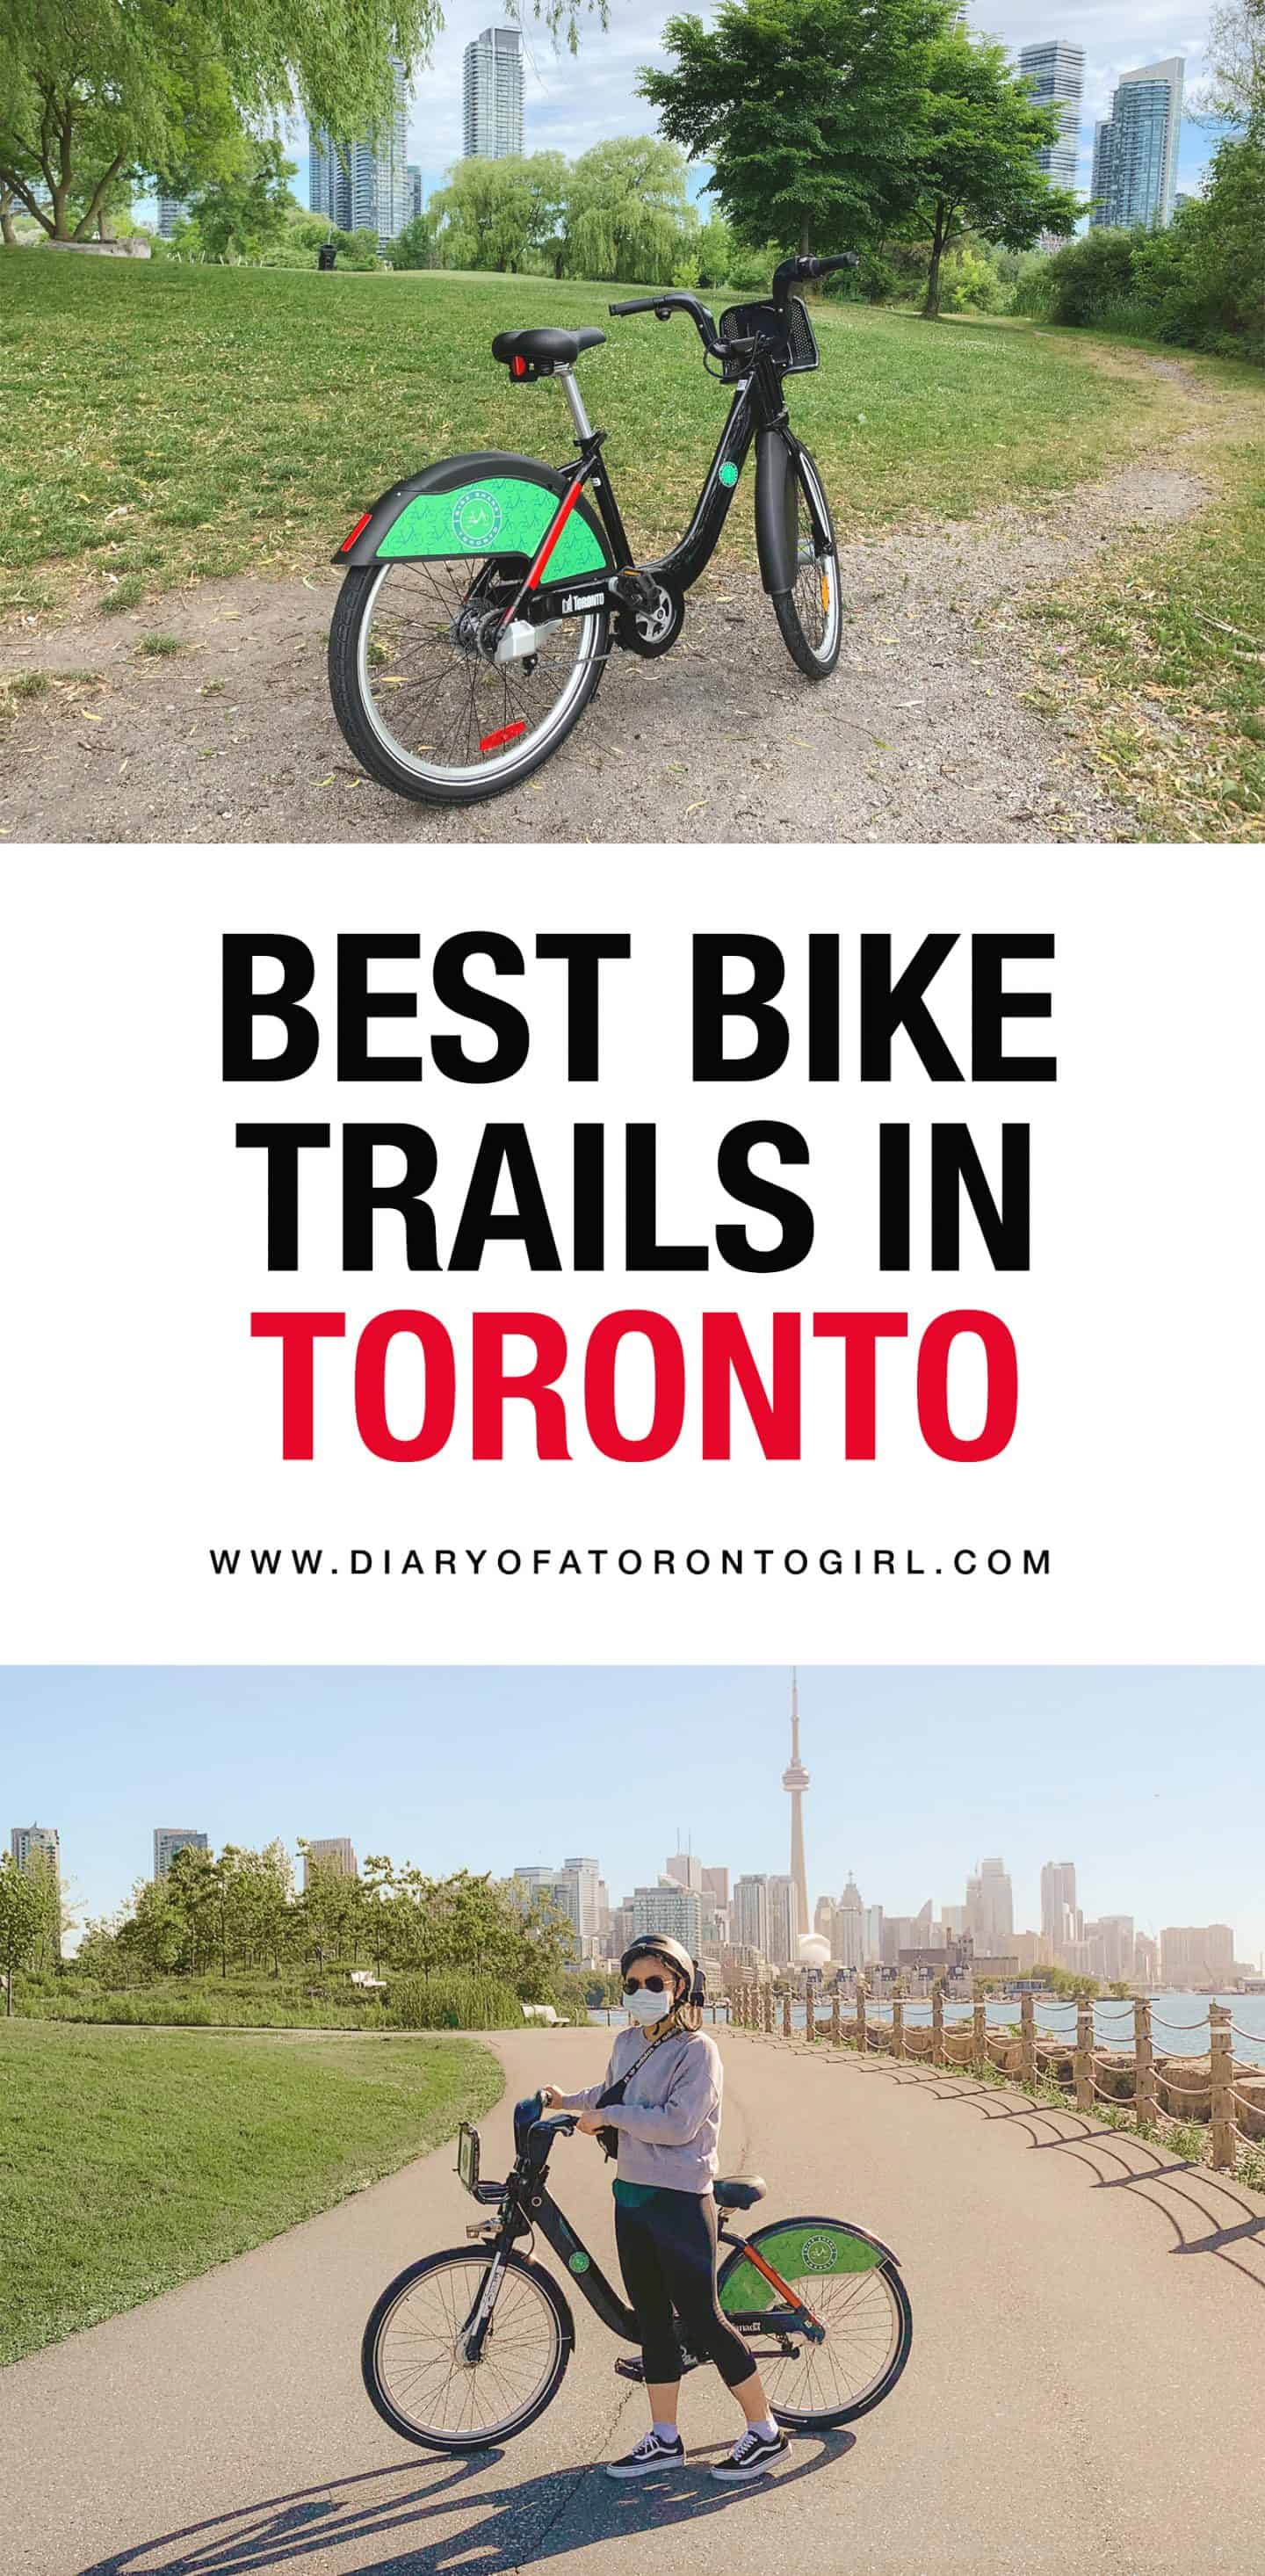 The best bike trails in Toronto whether you're looking for scenic views or good cardio!